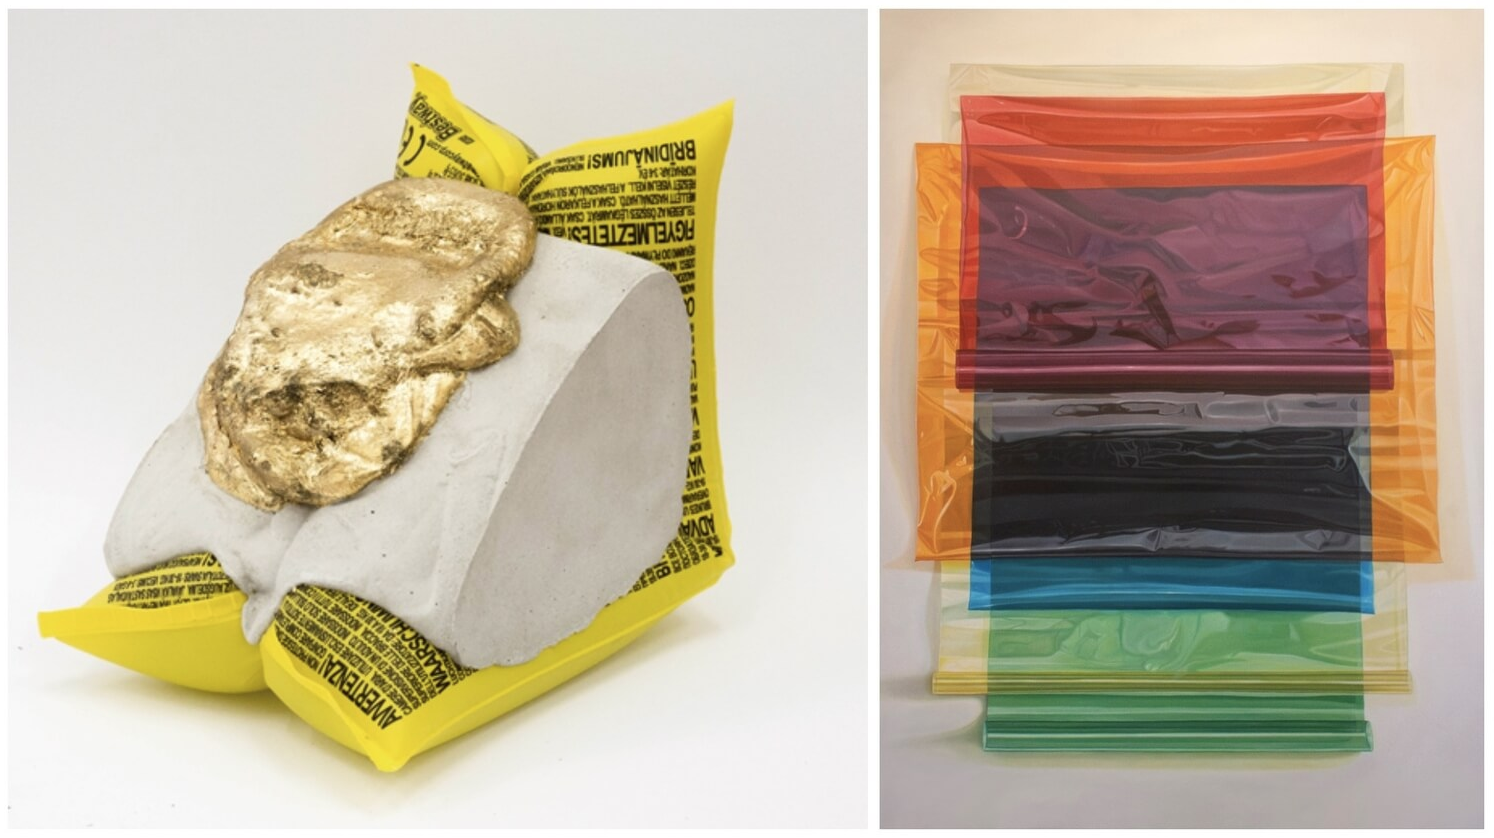 Left:  Lucas Simoes,  Corpo de prova#09 , Cement, gold, inflatable, 16 x 16 x 11 cm, 2017  Right:  Nicolás Radic,  Celofán , Oil on canvas, 170 x 145 cm, 2017